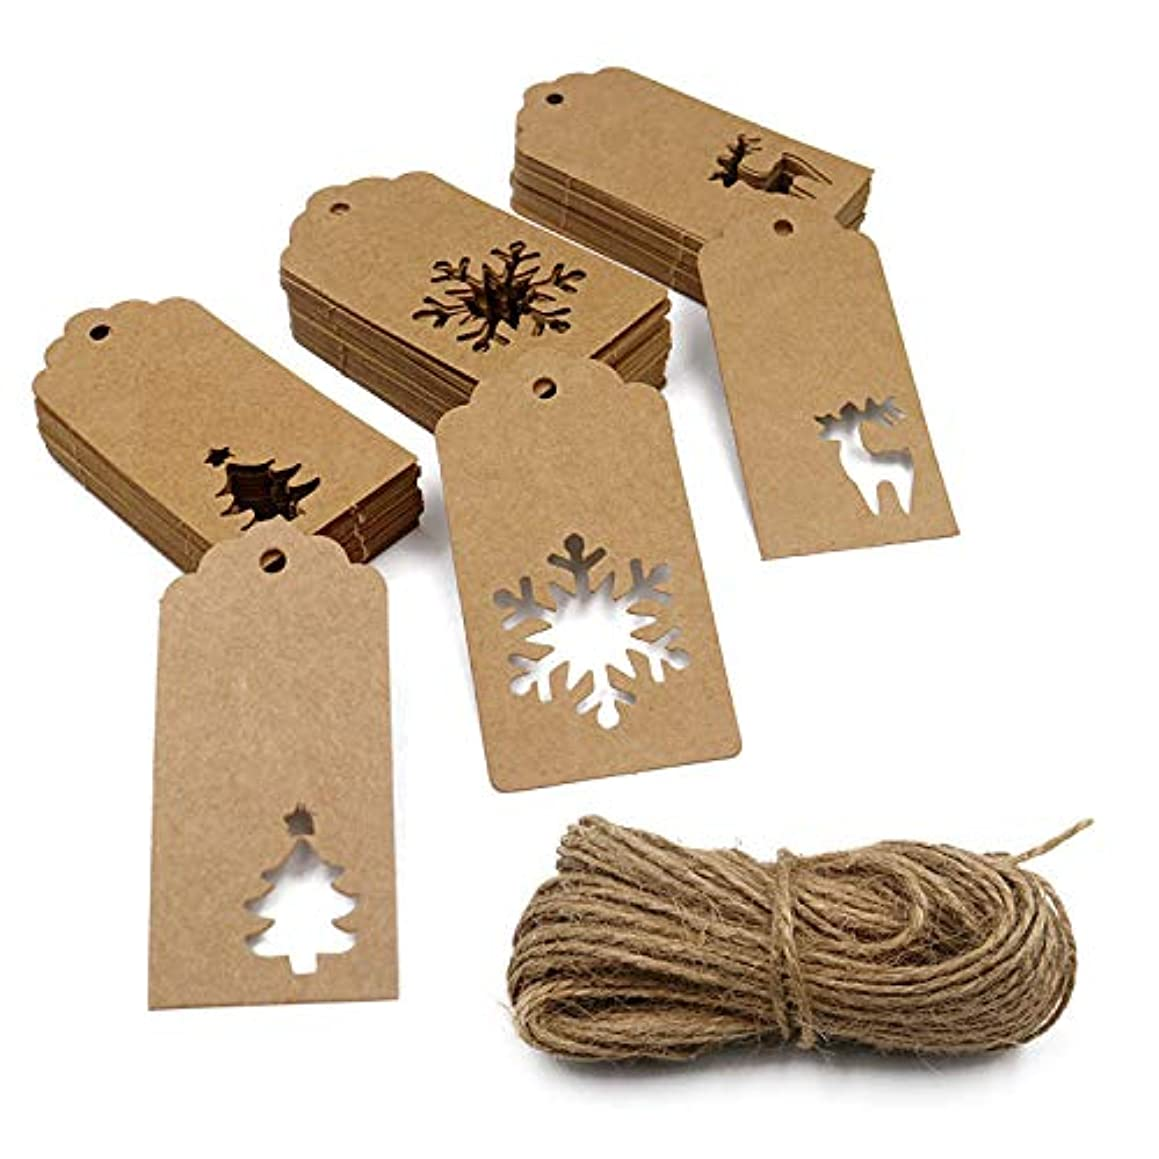 150PCS Christmas Tags, Kraft Paper Gift Tags with 100 Feet Jute Twine Hang Labels Christmas Tree Snowflake Reindeer Design for Arts and Crafts, Wedding Christmas Thanksgiving and Holiday (Brown)